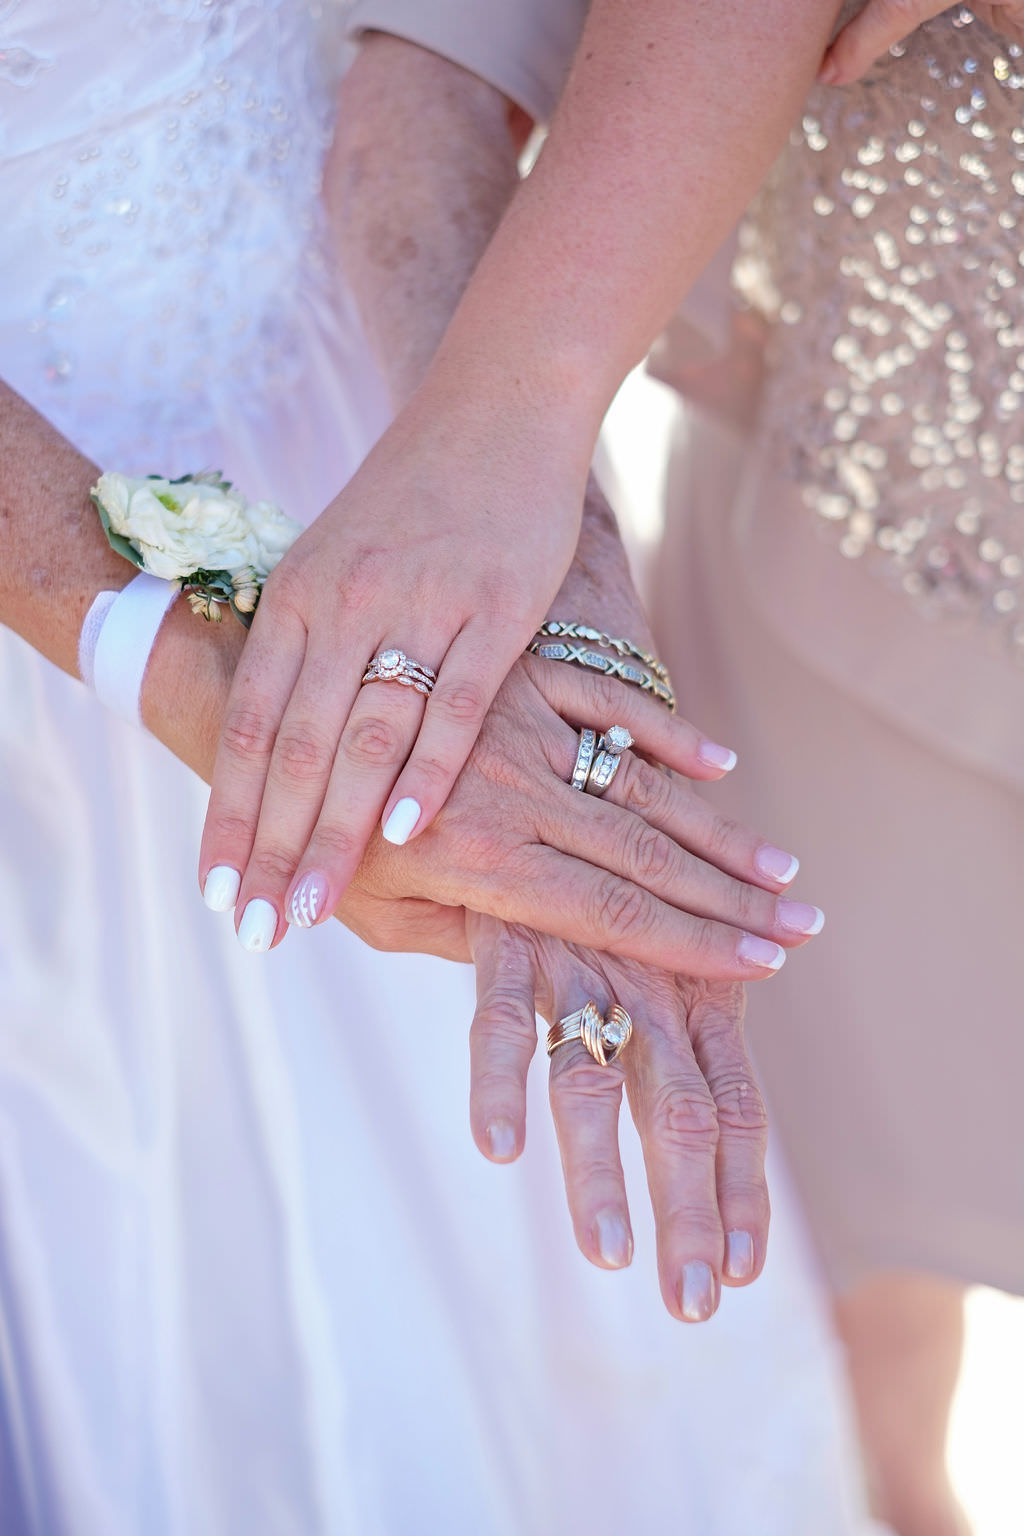 Florida Bride, Mother of the bride and Grandmother Wedding Portrait of Hands with Wedding Rings | Tampa Bay Wedding Photographer Marc Edwards Photographs